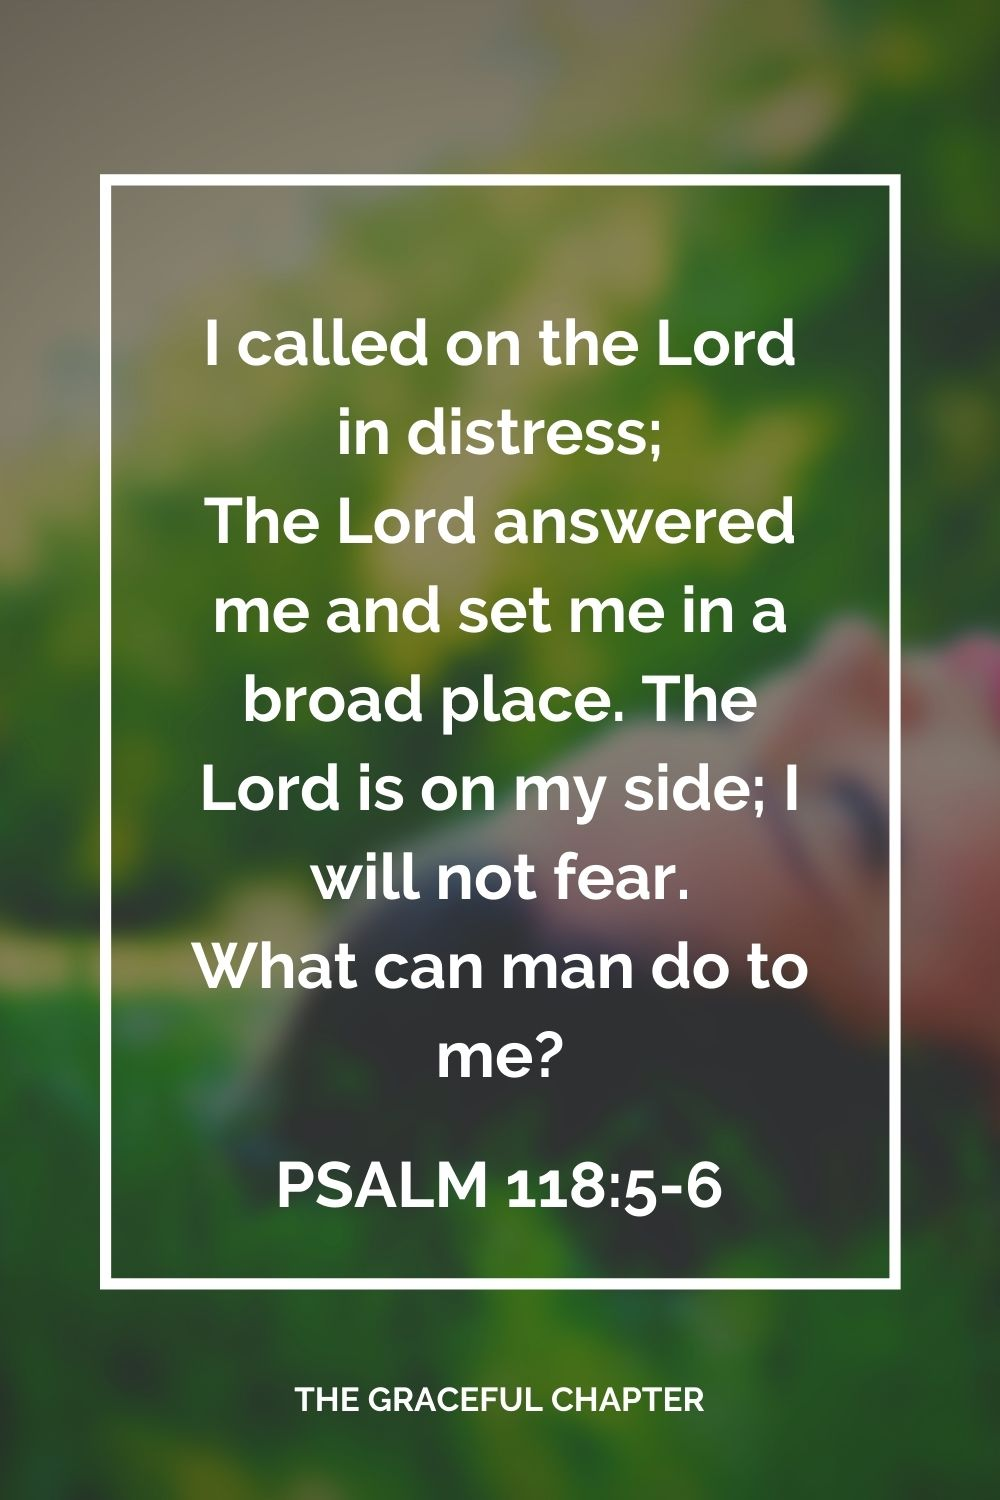 I called on the Lord in distress; The Lord answered me and set me in a broad place. The Lord is on my side; I will not fear. What can man do to me? Psalm 118:5-6